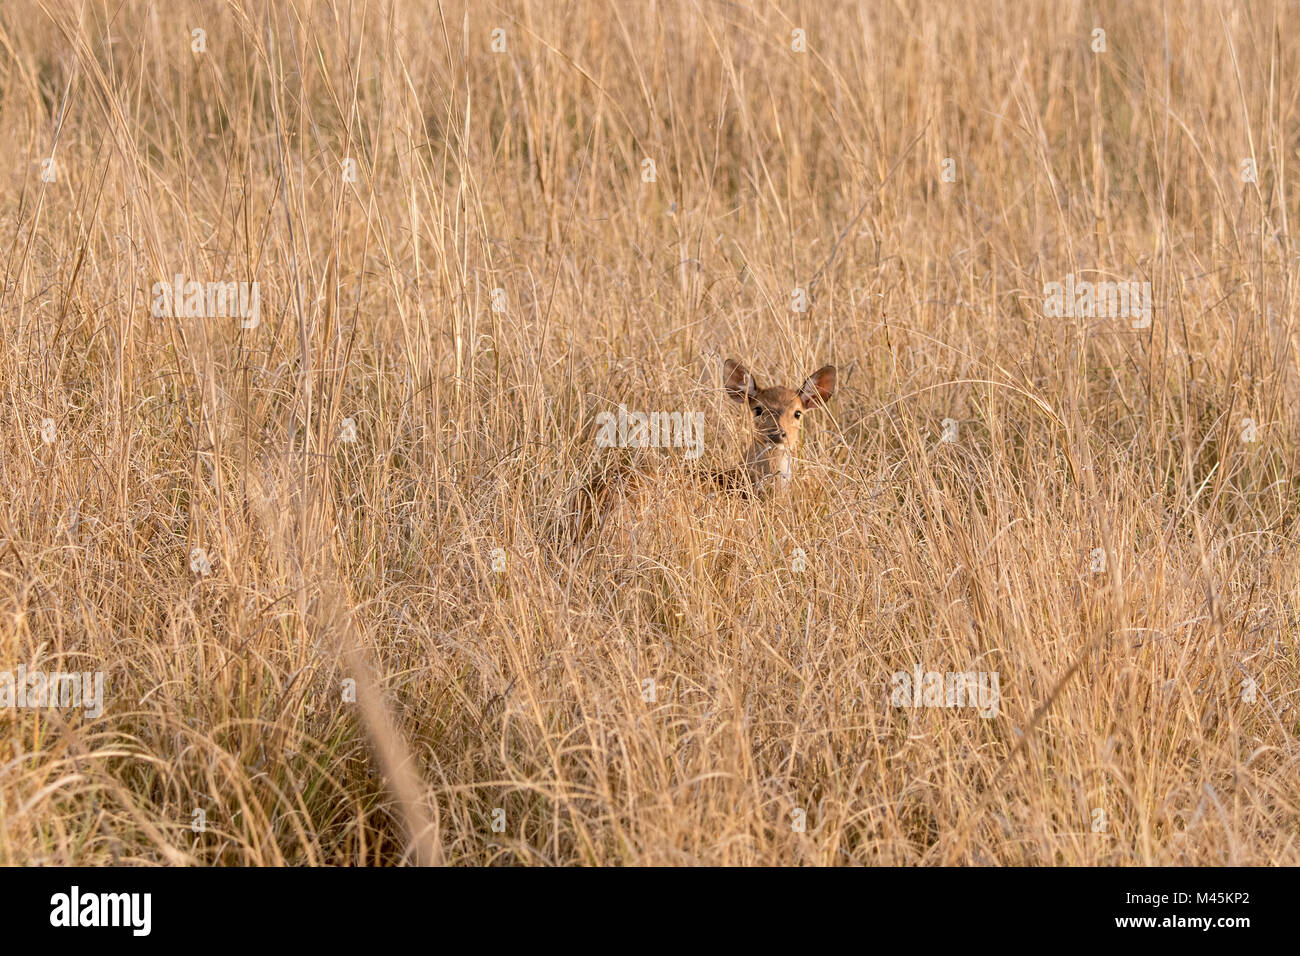 Young wild Chital or Spotted Deer fawn, Axis axis, hiding in dry grass in Bandhavgarh National Park, Madhya Pradesh, - Stock Image